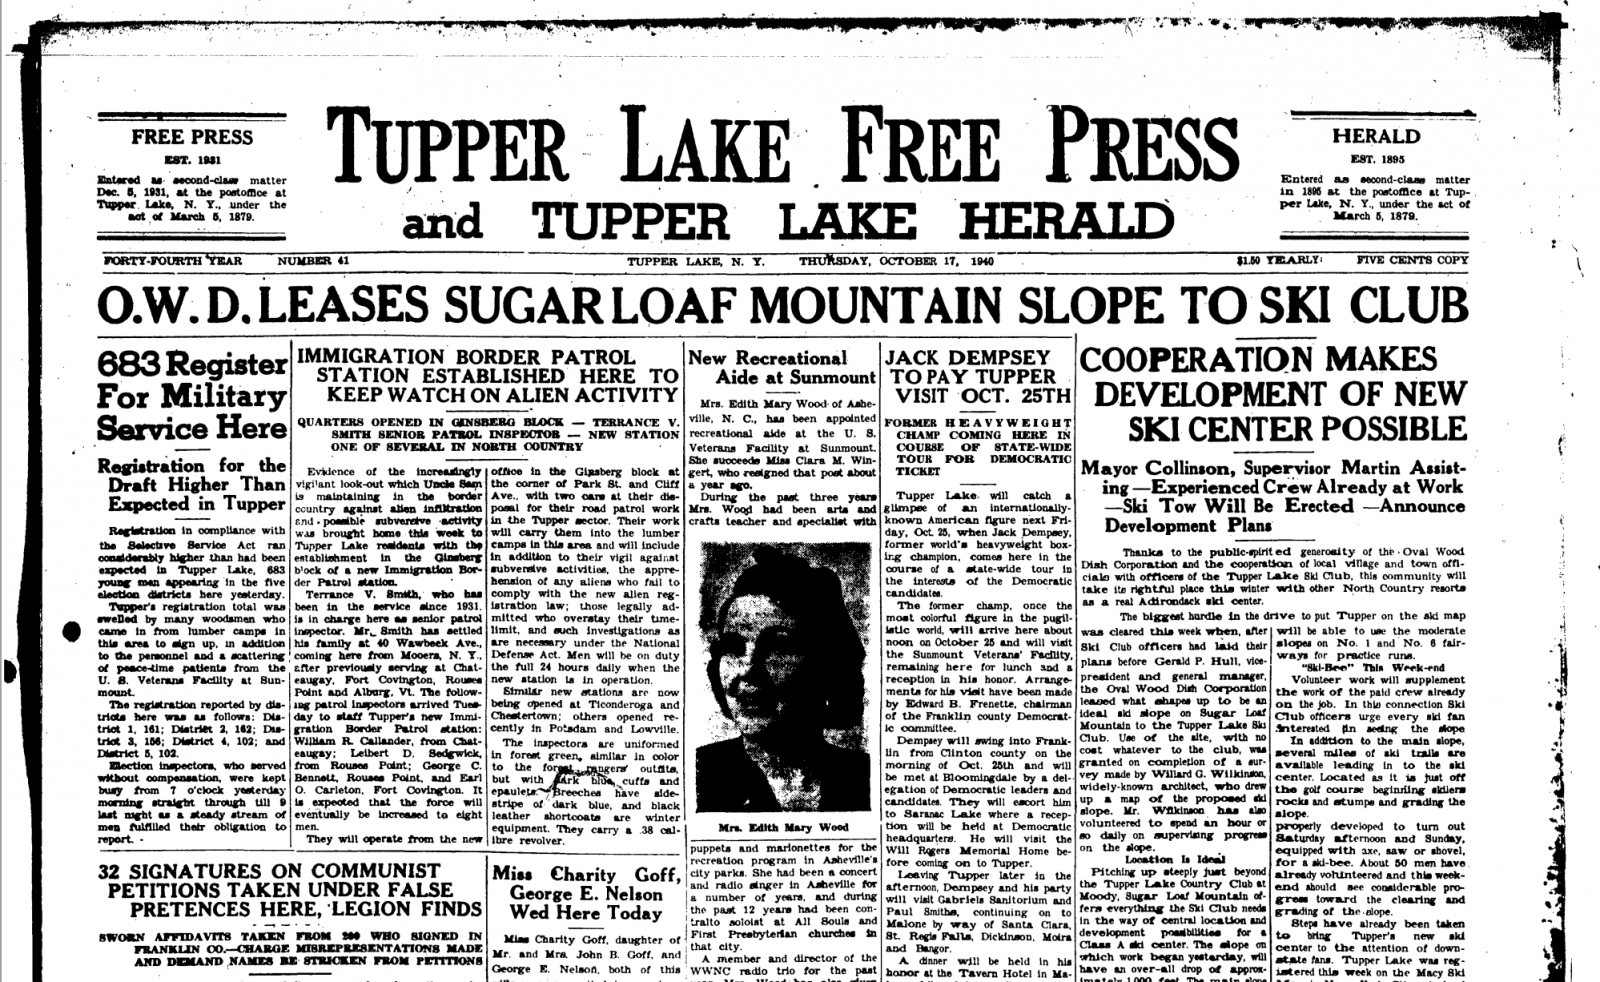 Front page of The Tupper Lake Free Press & Tupper Lake Herald (October 17, 1940)